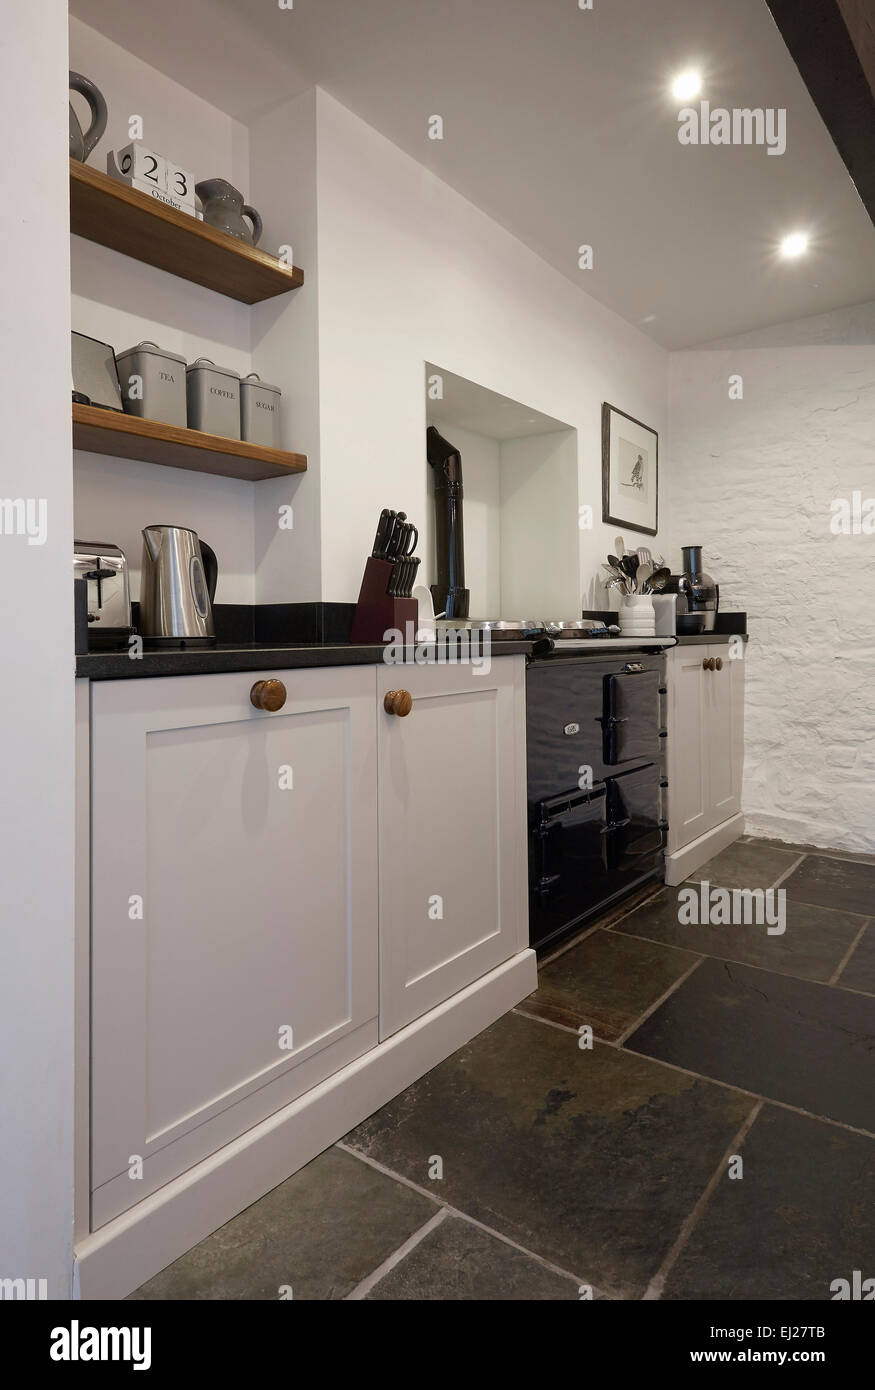 A White country style kitchen in a farmhouse in the UK with stone walls. Stock Photo